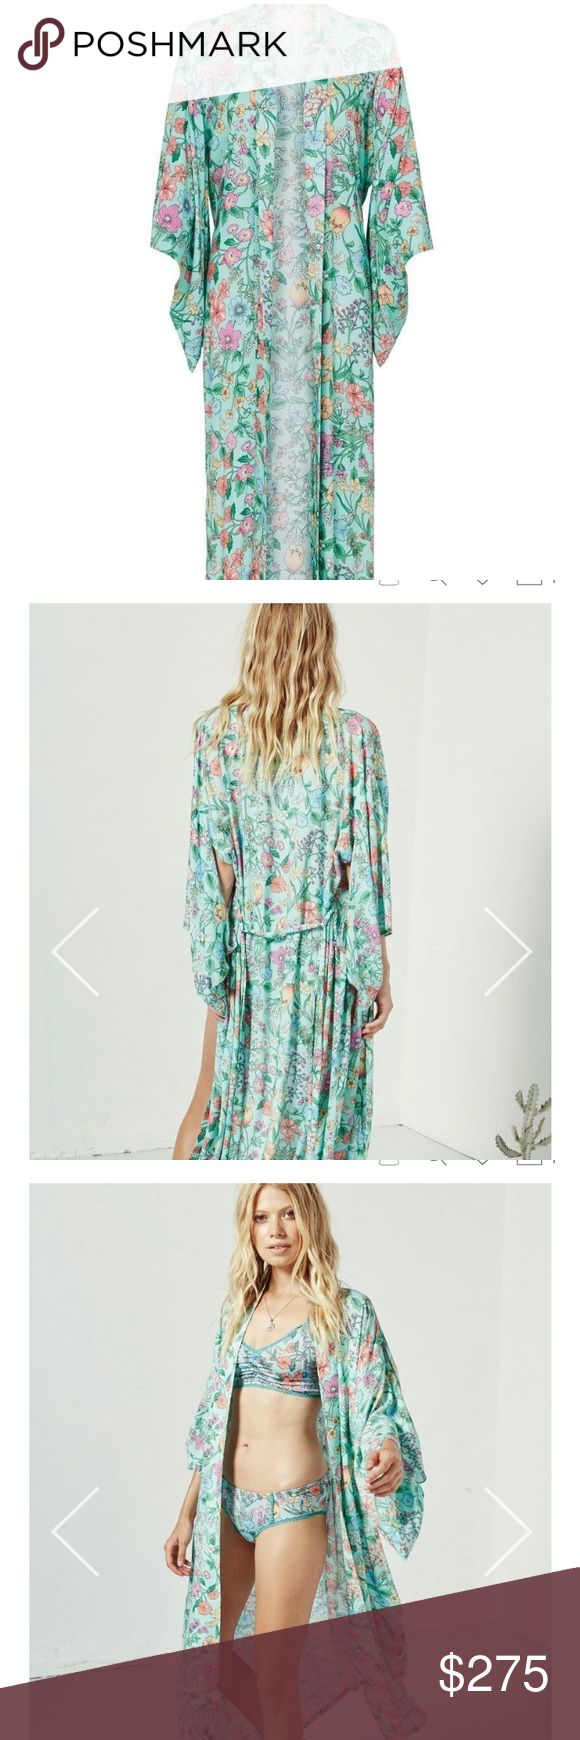 $184 plus shipping  still for sale SAYULITA KIMONO BNWT SAYULITA KIMONO BY SPELL. Can do a better price on 🅿️🅿️. Still for sale.. will sell what I paid for 184, plus the shipping on 🅿️🅿️ Spell & The Gypsy Collective Intimates & Sleepwear Robes